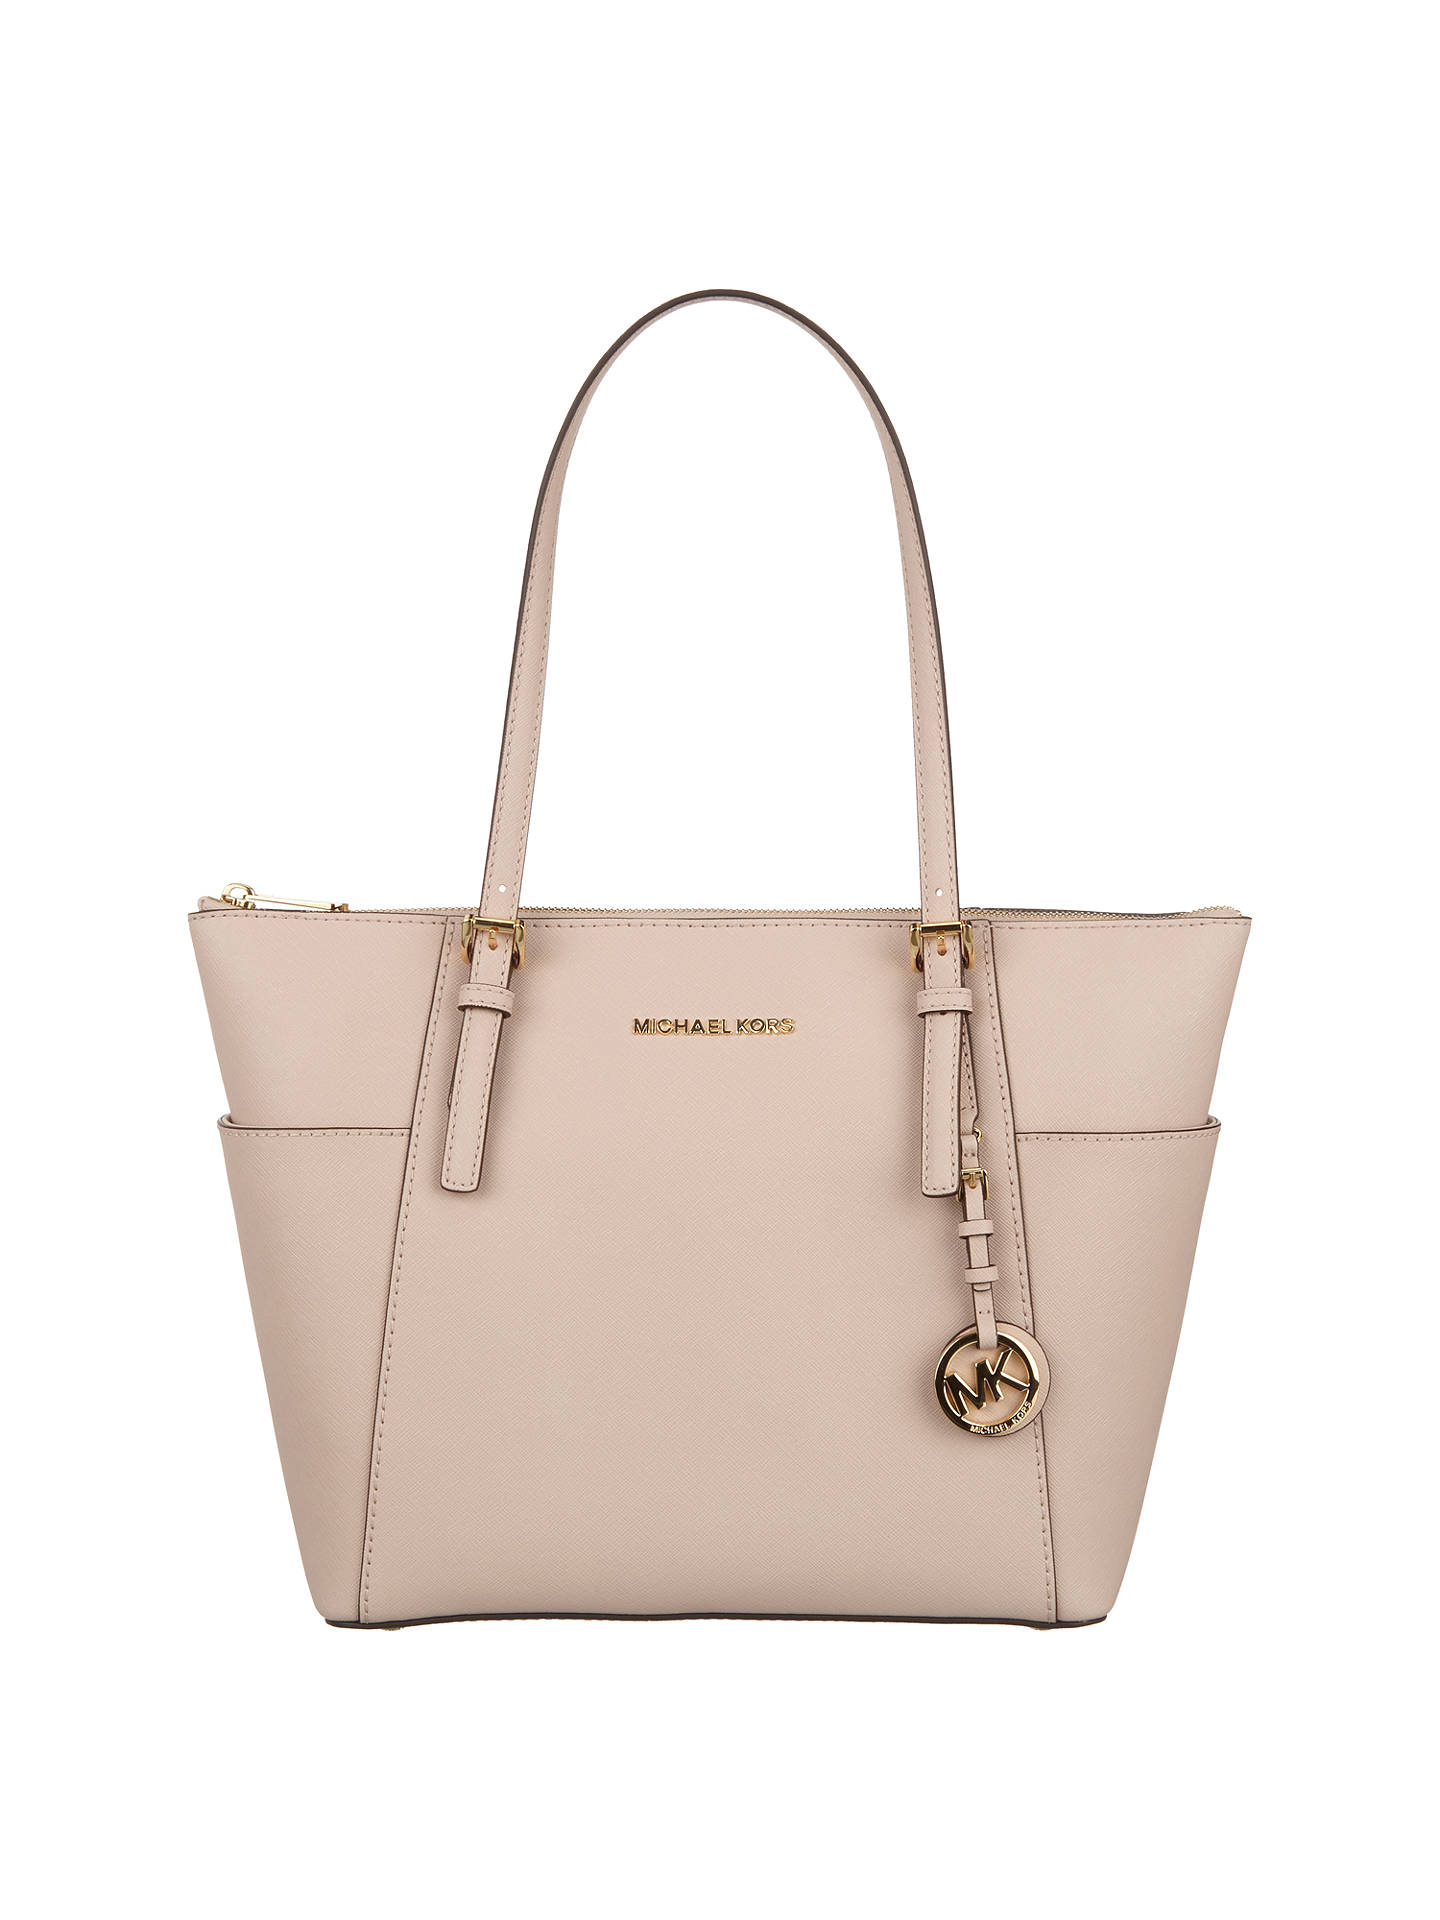 MICHAEL Michael Kors Jet Set EastWest Leather Tote Bag at